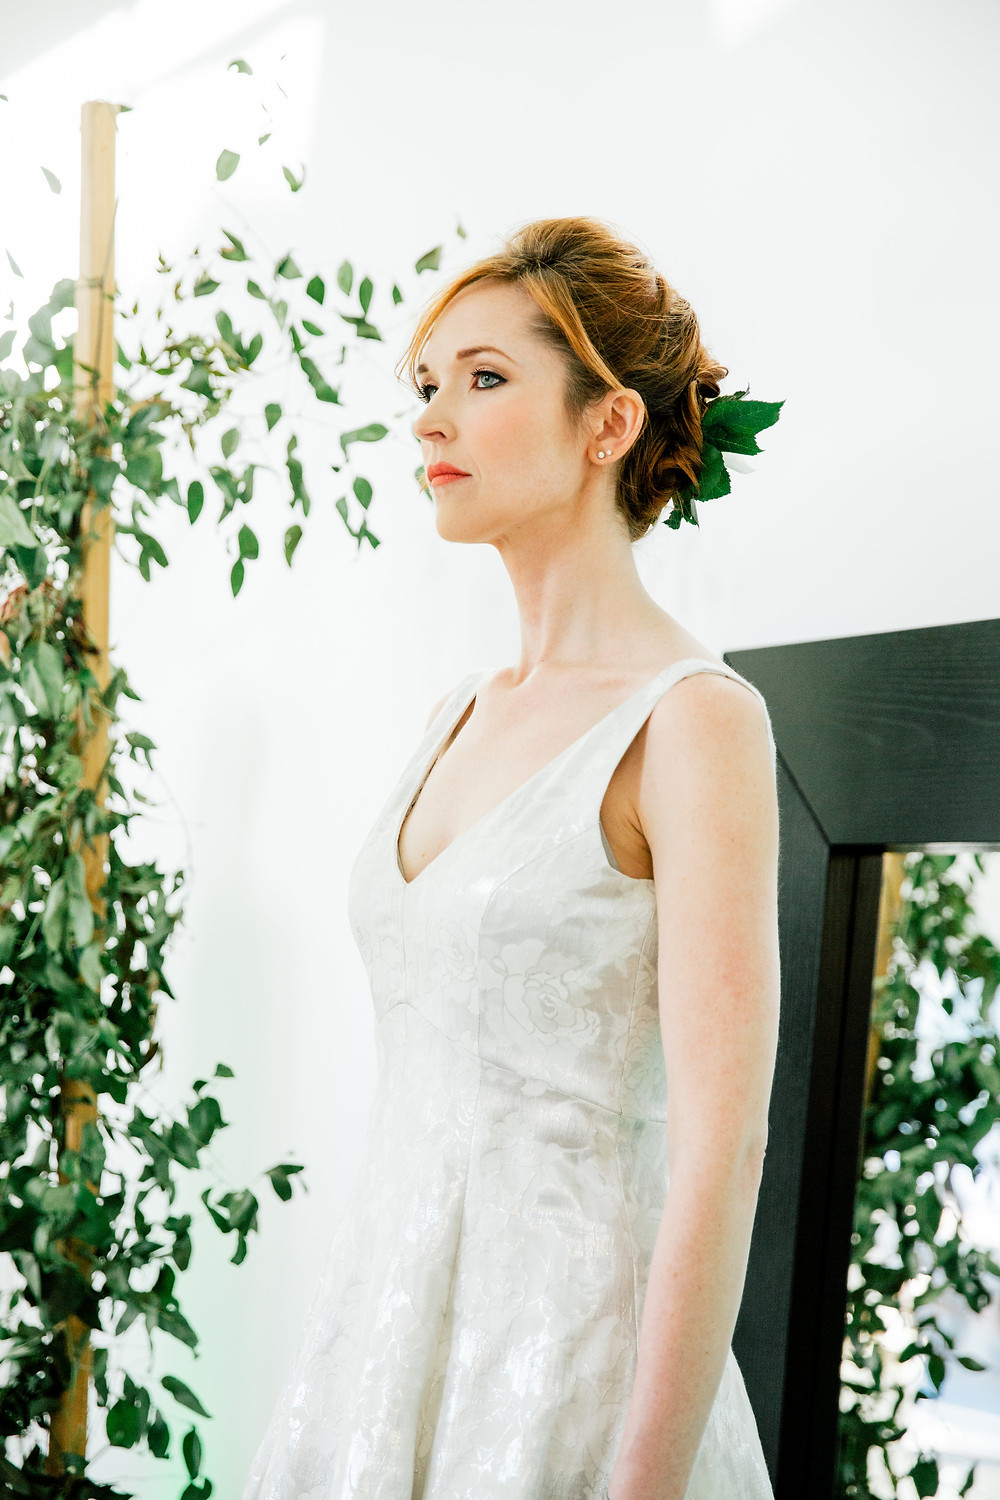 Red head model wears jacquard wedding gown